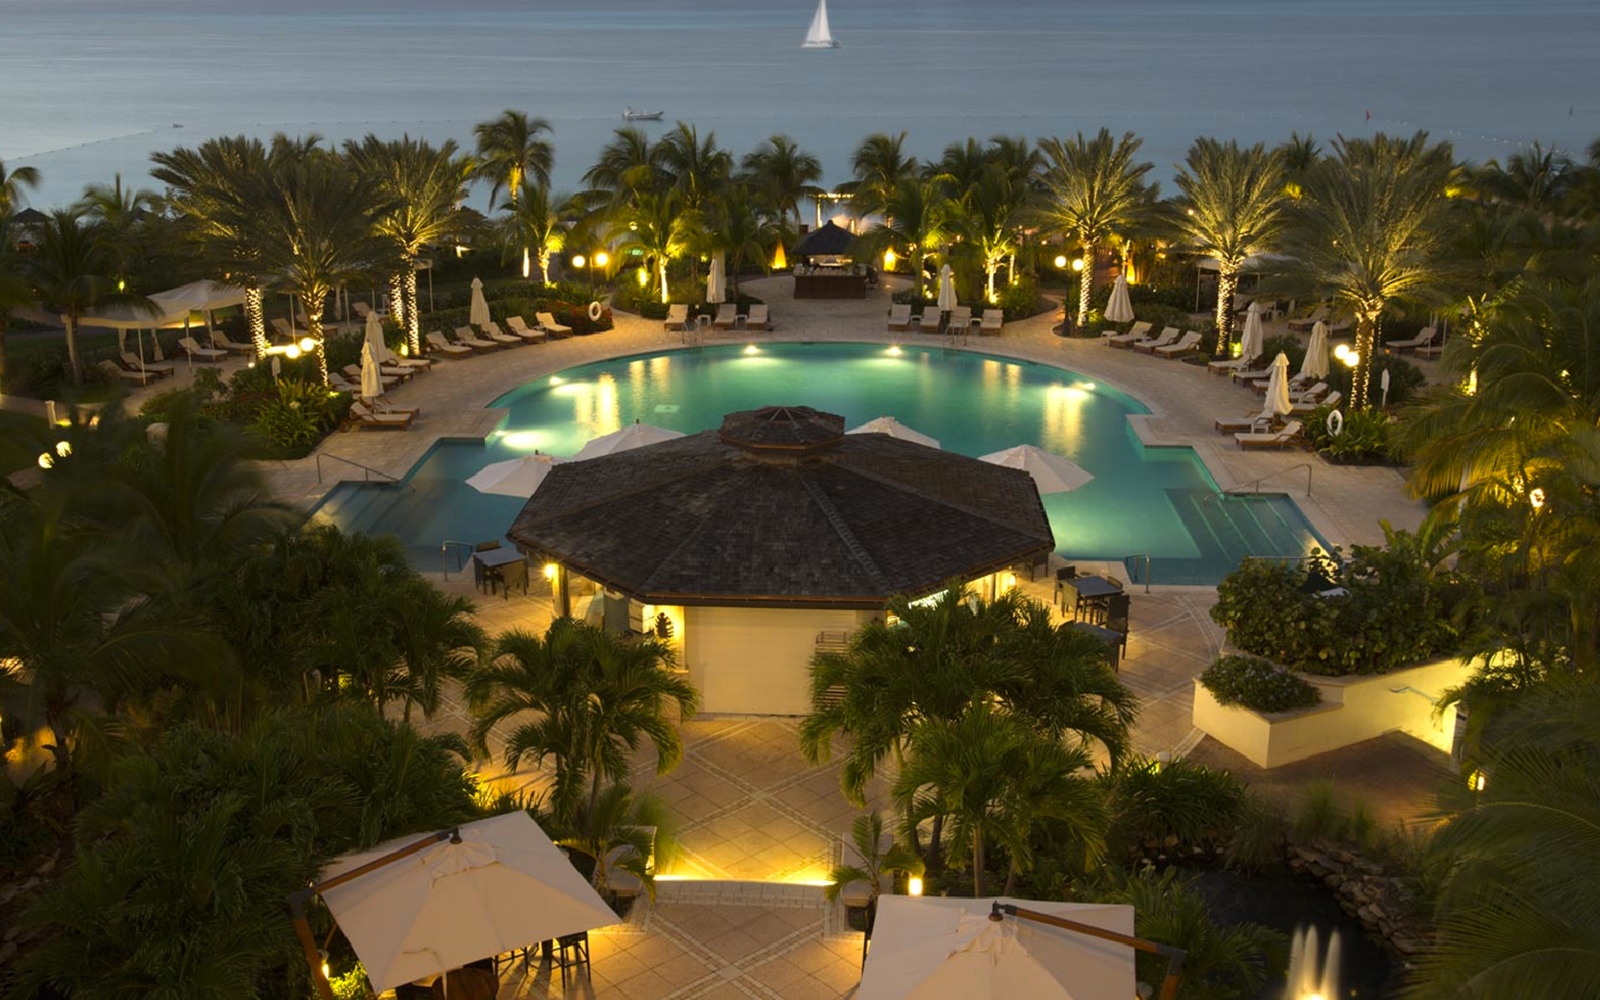 Best Caribbean Resorts: Seven Stars Resort, Turks and Caicos